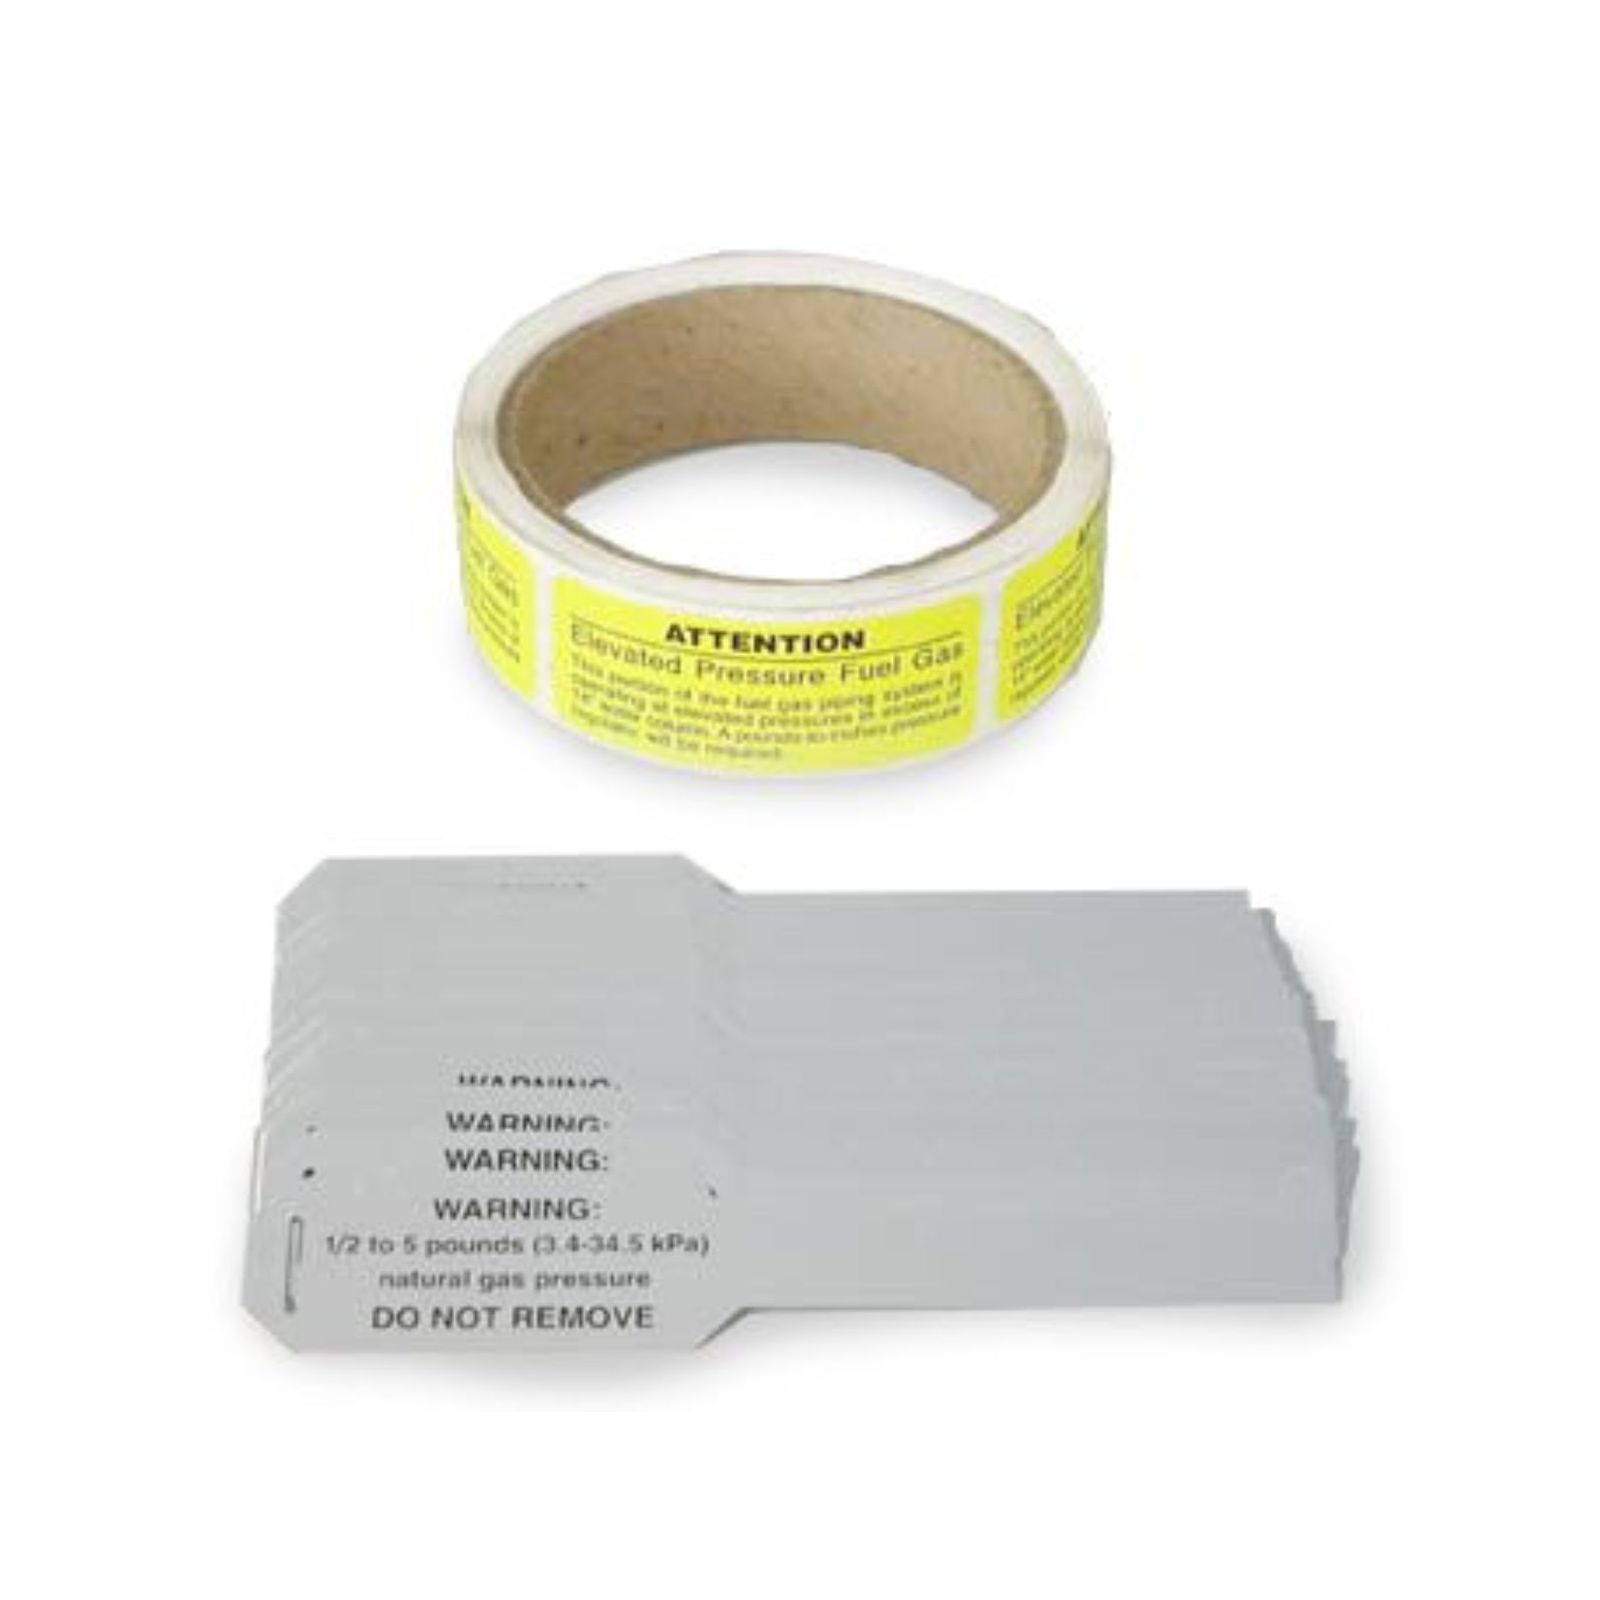 Gastite EPAL-1-100 - Adhesive Labels For Elevated Pressure Identification